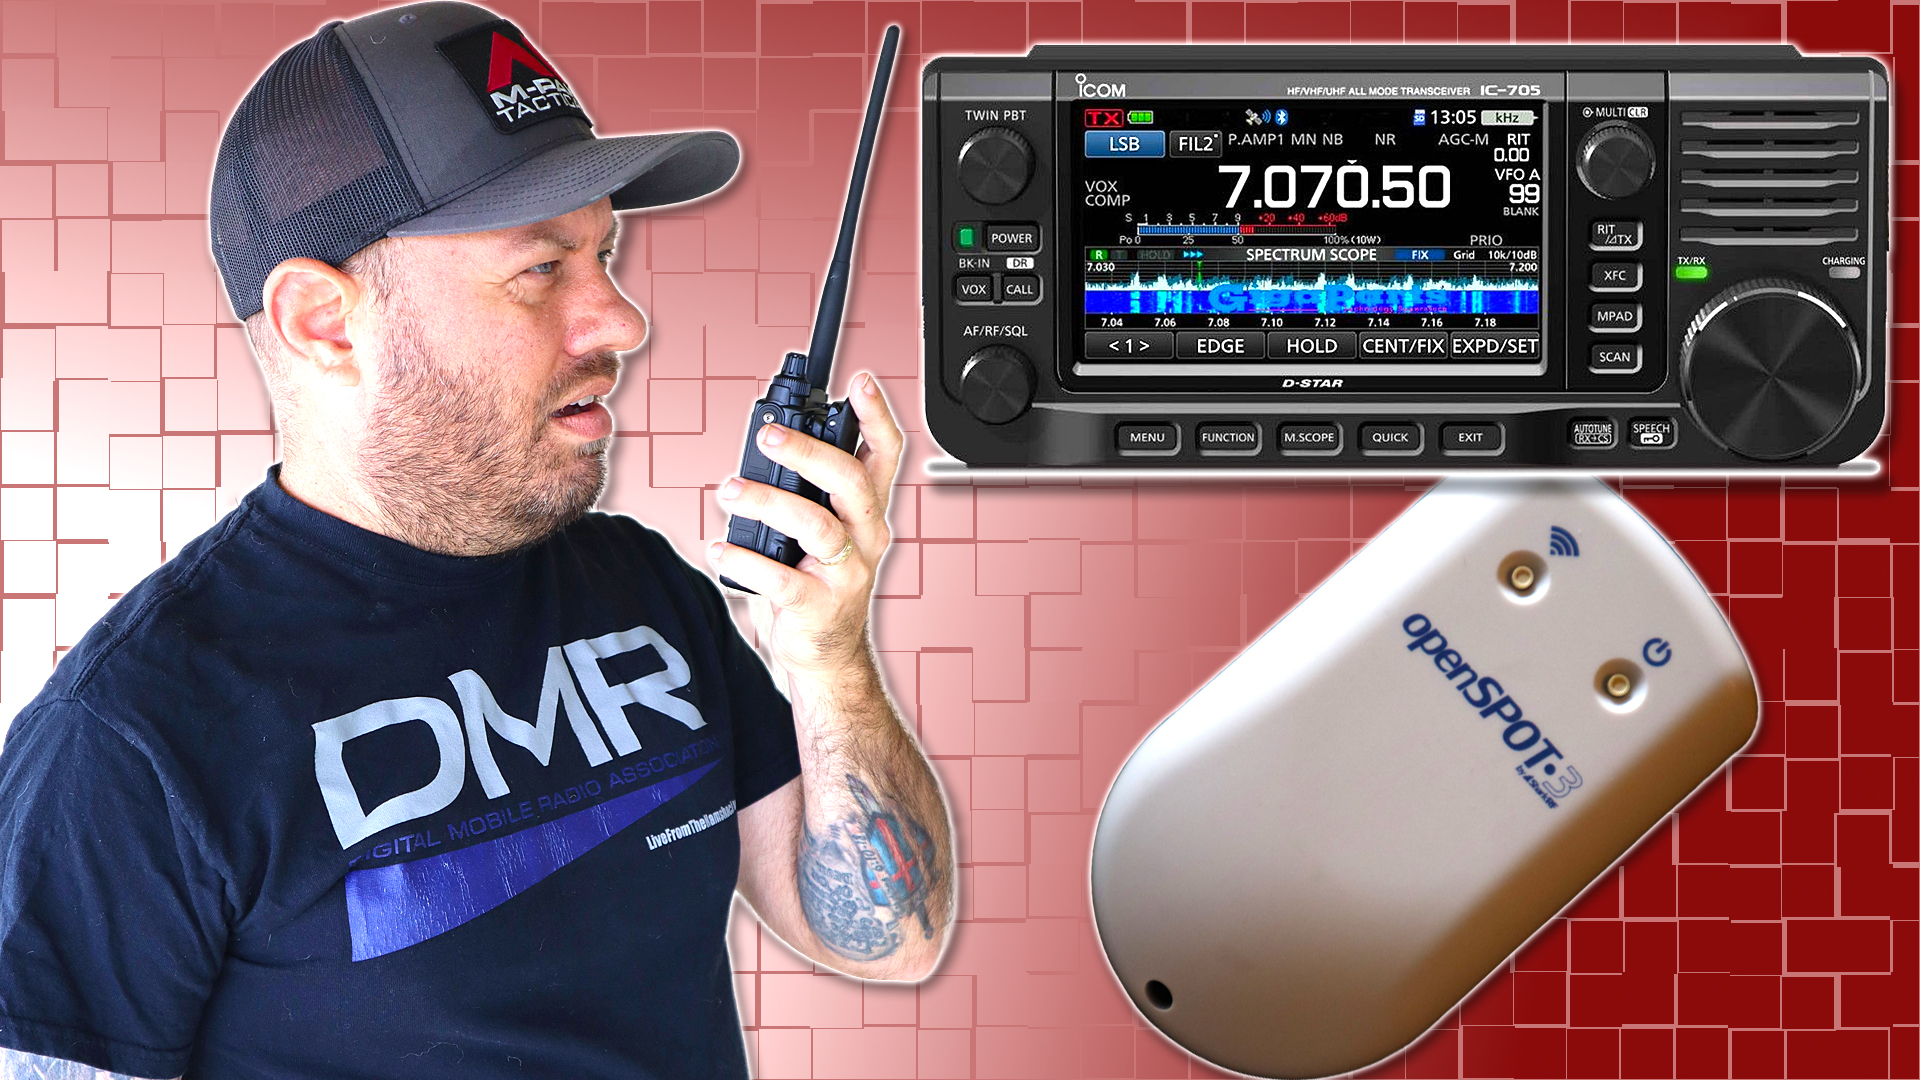 Episode 474: Icom IC-705 DSTAR to DMR with the Openspot3 Cross Mode